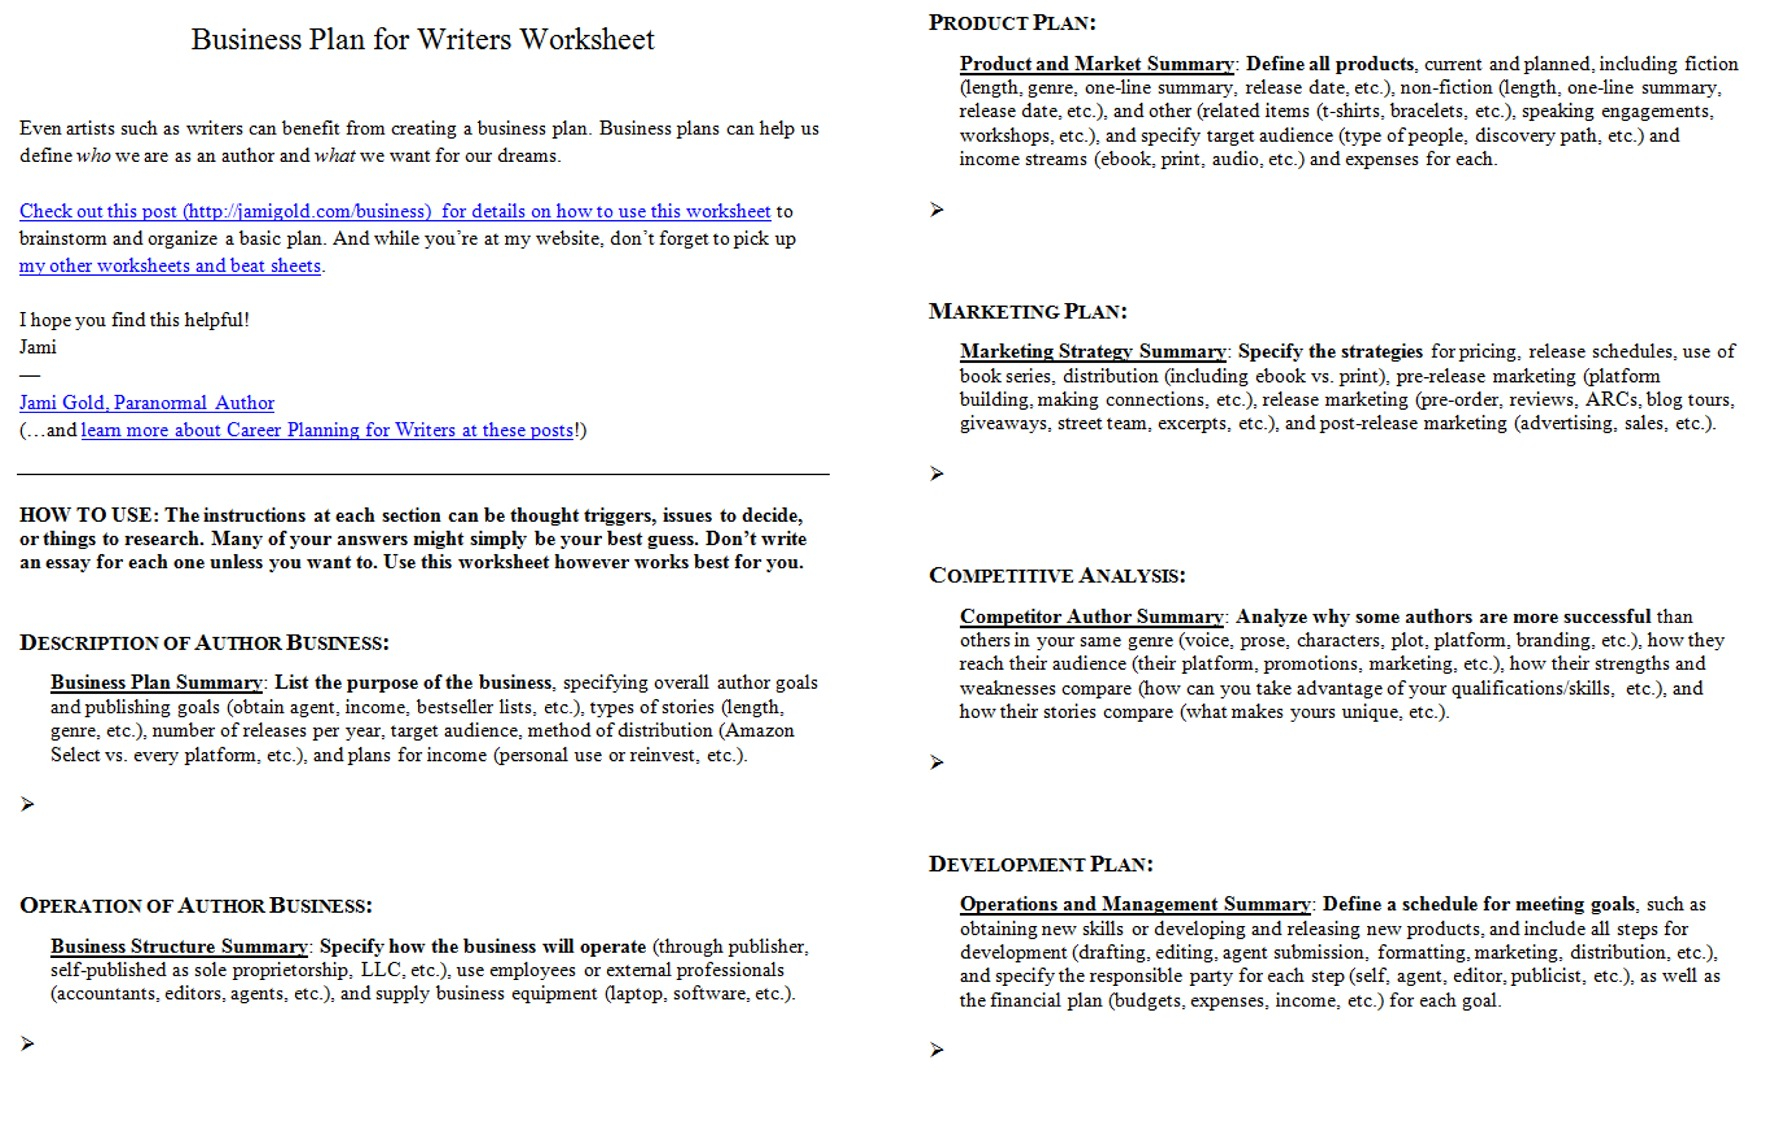 Weirdmailus  Pleasing Worksheets For Writers  Jami Gold Paranormal Author With Interesting Screen Shot Of Both Pages Of The Business Plan For Writers Worksheet With Adorable Erosion Worksheets Also Cladogram Analysis Worksheet In Addition Go Math Worksheets And Army Promotion Worksheet As Well As Line Segment Worksheets Additionally Producers And Consumers Worksheet From Jamigoldcom With Weirdmailus  Interesting Worksheets For Writers  Jami Gold Paranormal Author With Adorable Screen Shot Of Both Pages Of The Business Plan For Writers Worksheet And Pleasing Erosion Worksheets Also Cladogram Analysis Worksheet In Addition Go Math Worksheets From Jamigoldcom